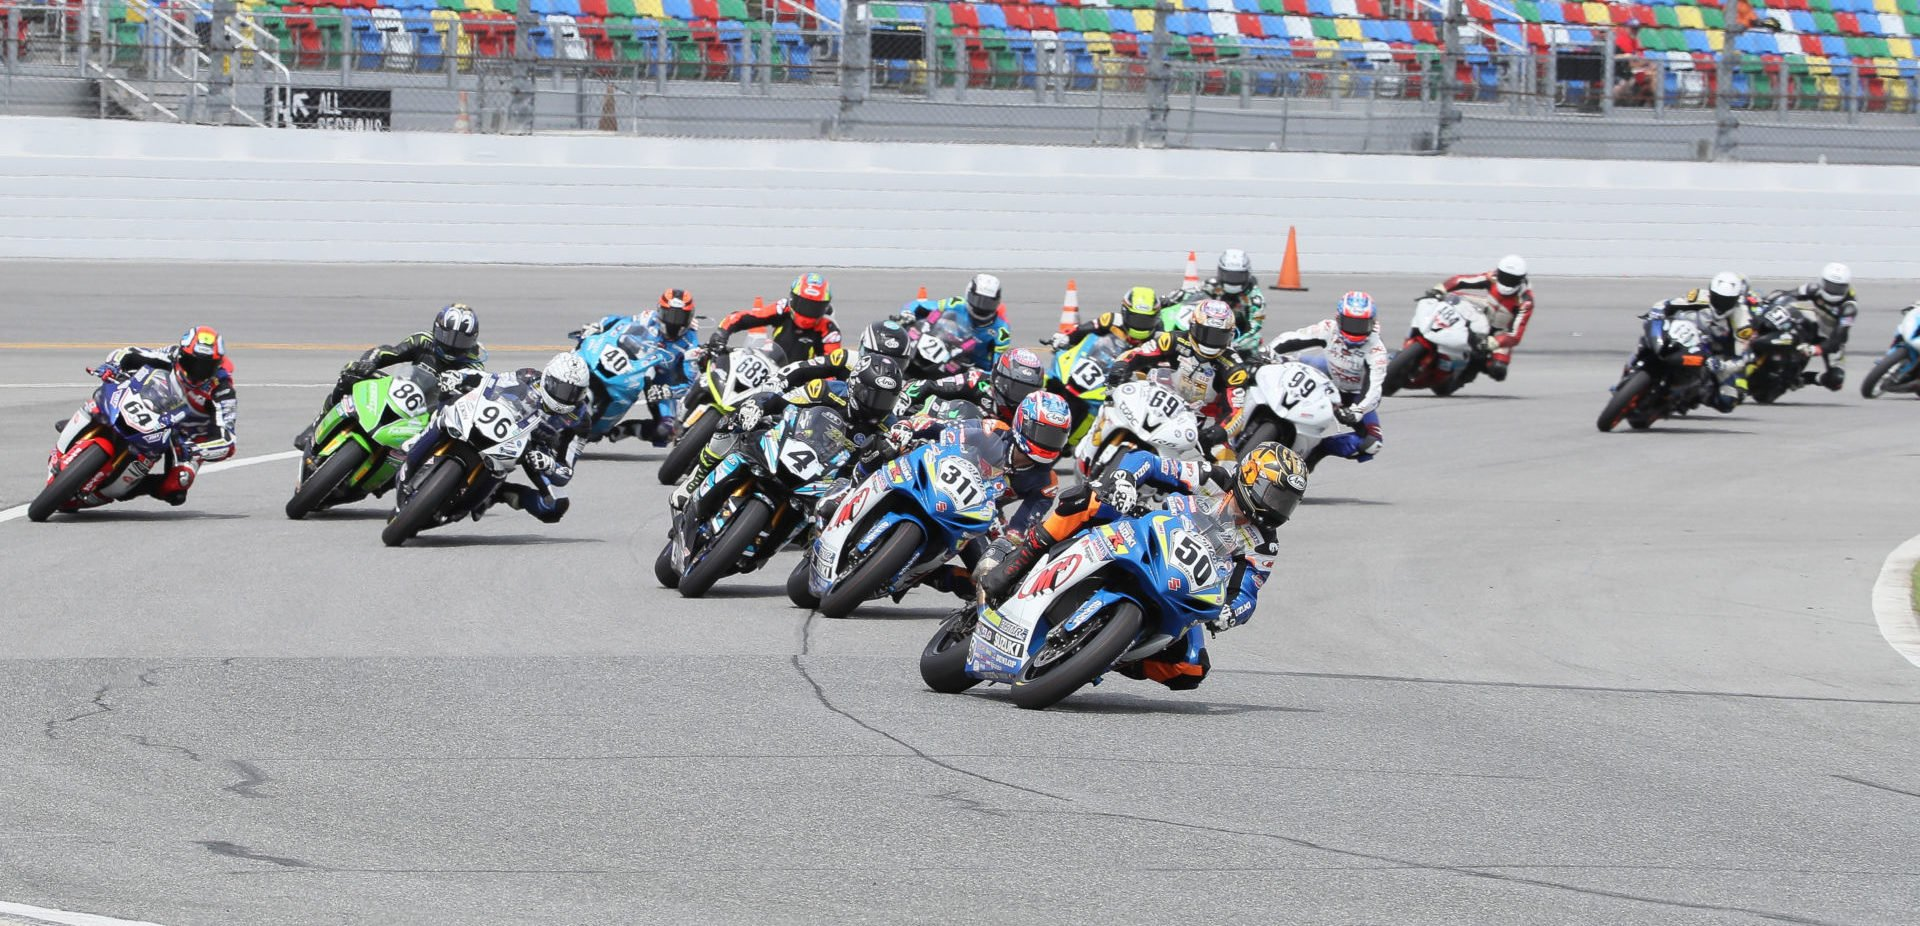 The start of the 2019 Daytona 200. Photo by Brian J. Nelson.